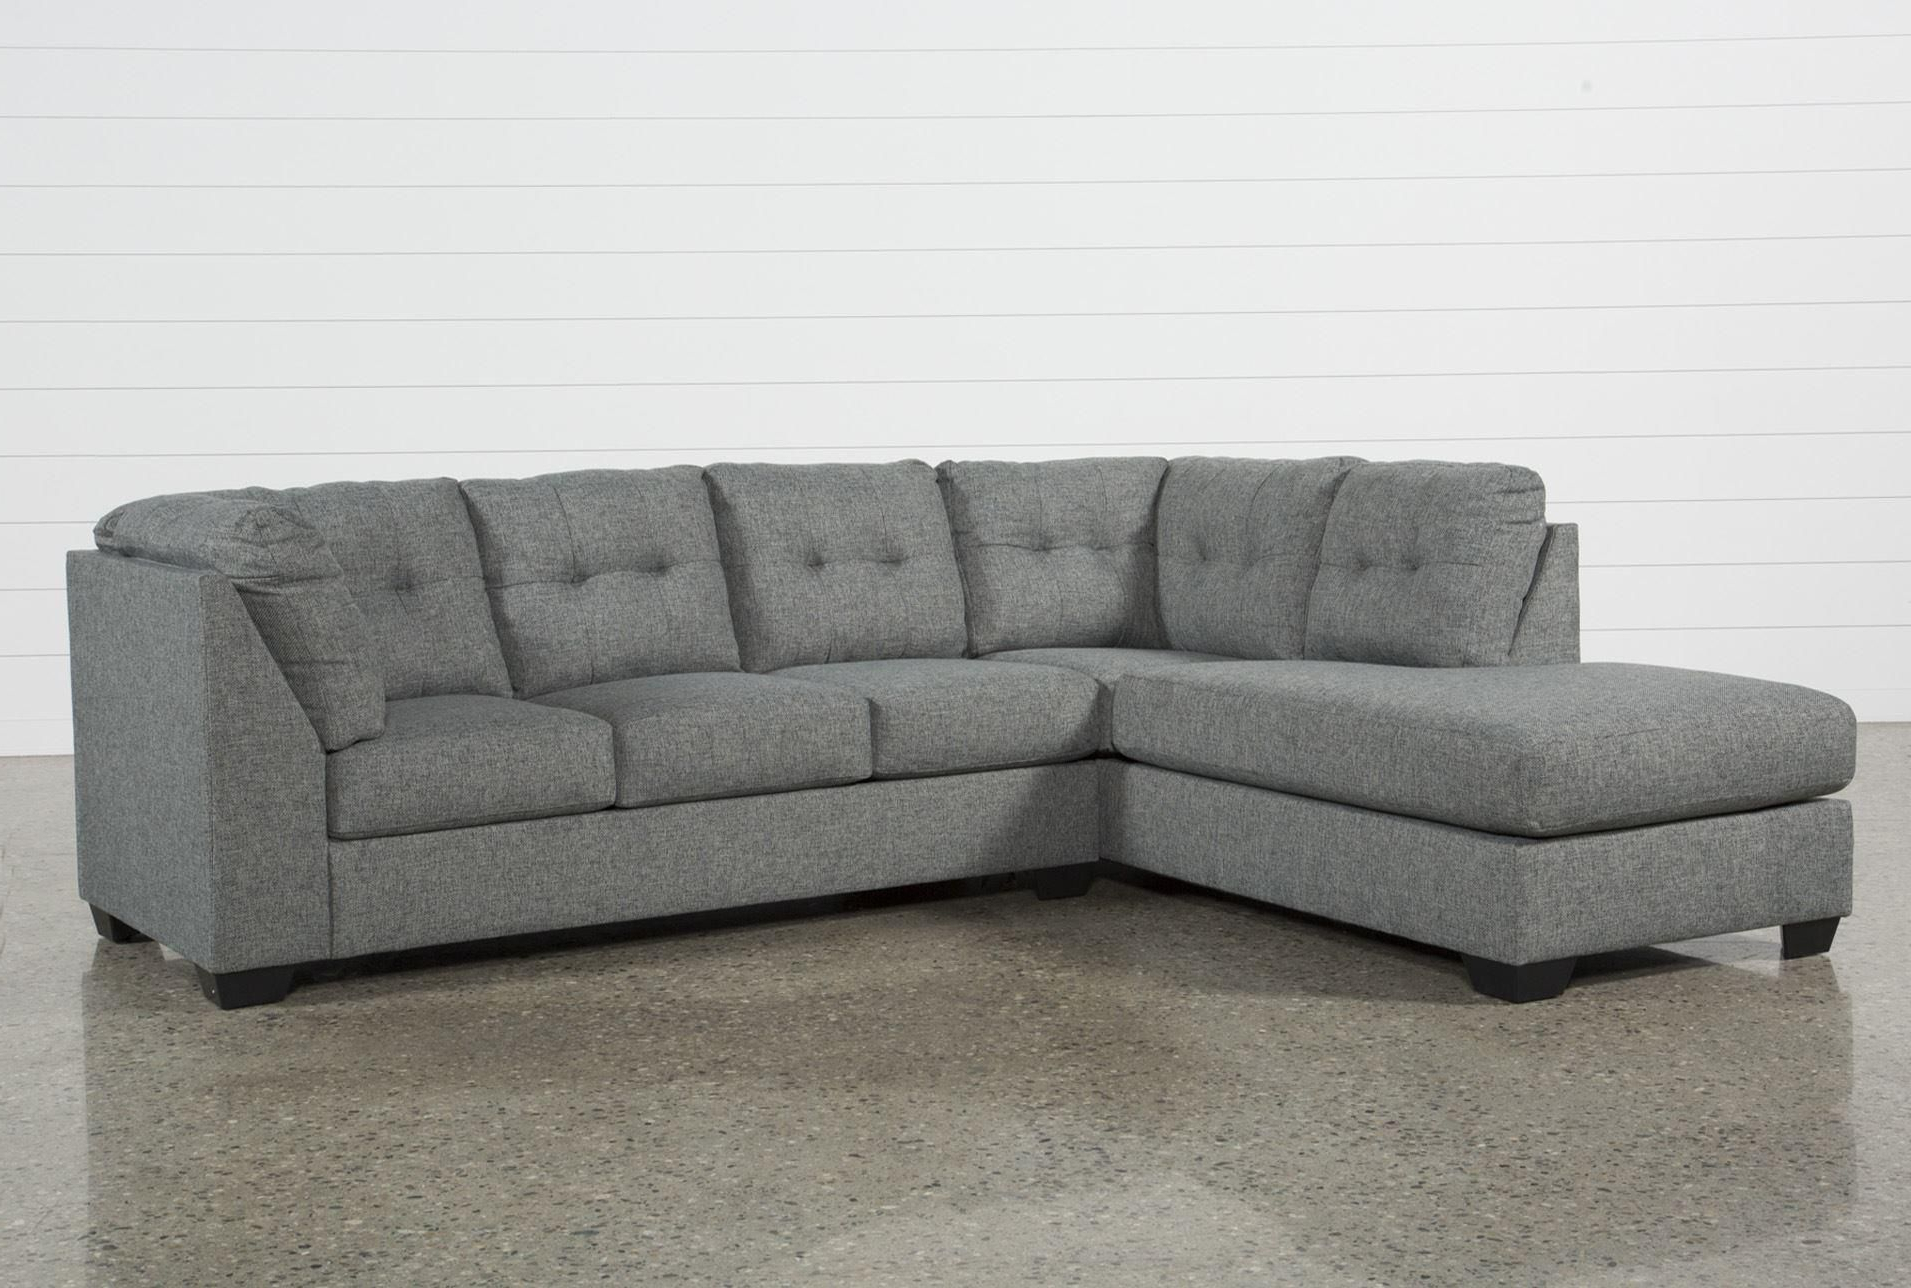 Turdur 3 Piece Sectionals With Laf Loveseat For Well Known Arrowmask 2 Piece Sectional W/sleeper & Left Facing Chaise (View 15 of 20)